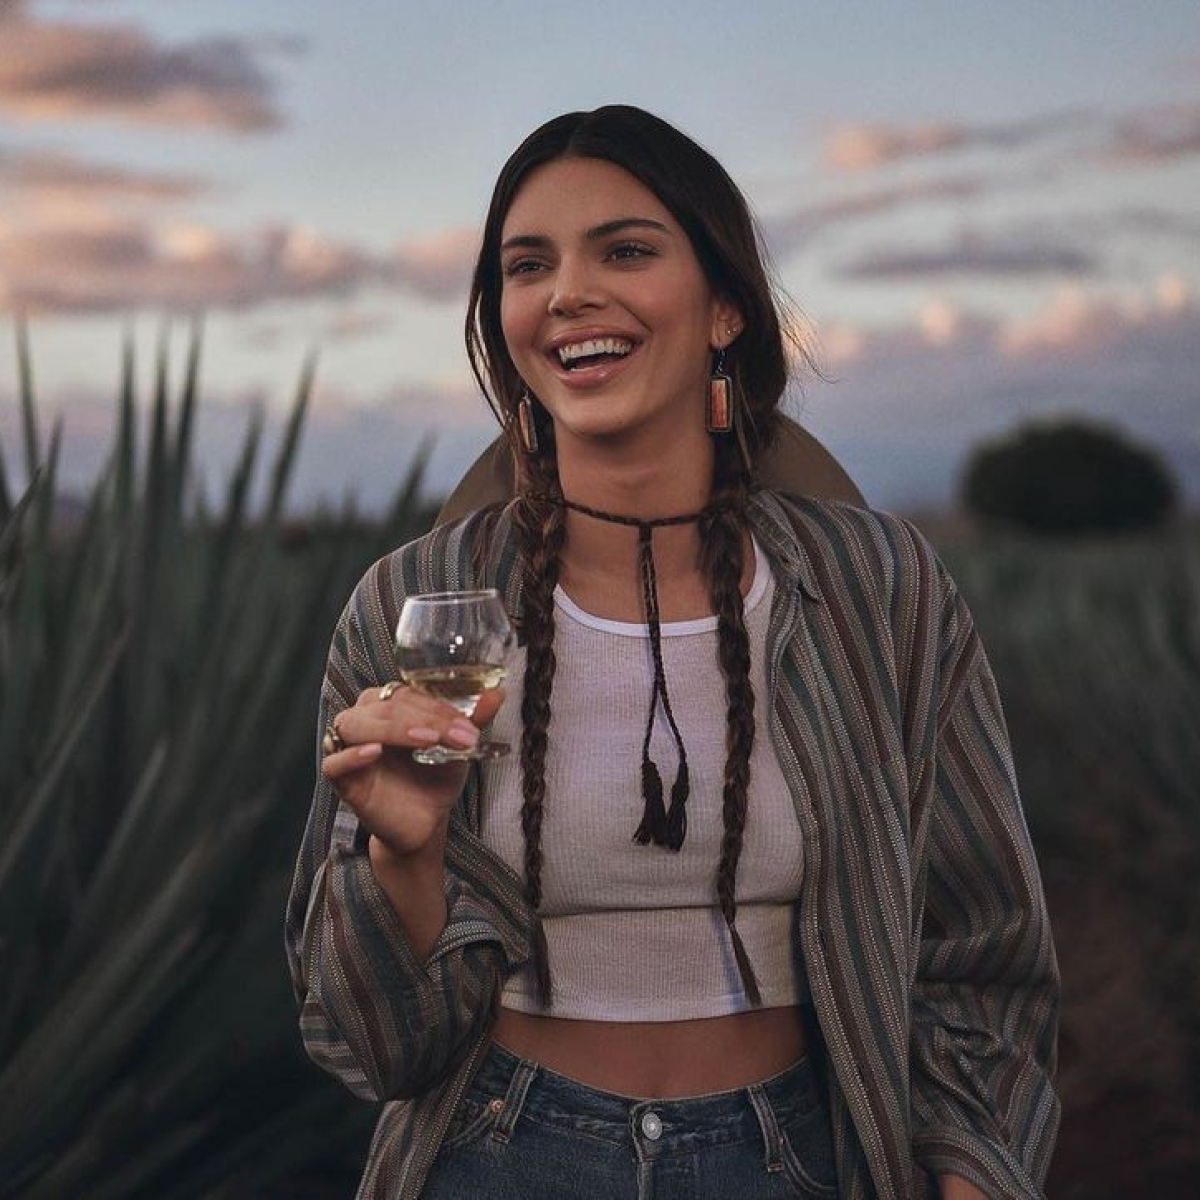 'That's not the way you drink': Kendall Jenner's Mexican tequila ad accused of cultural appropriation